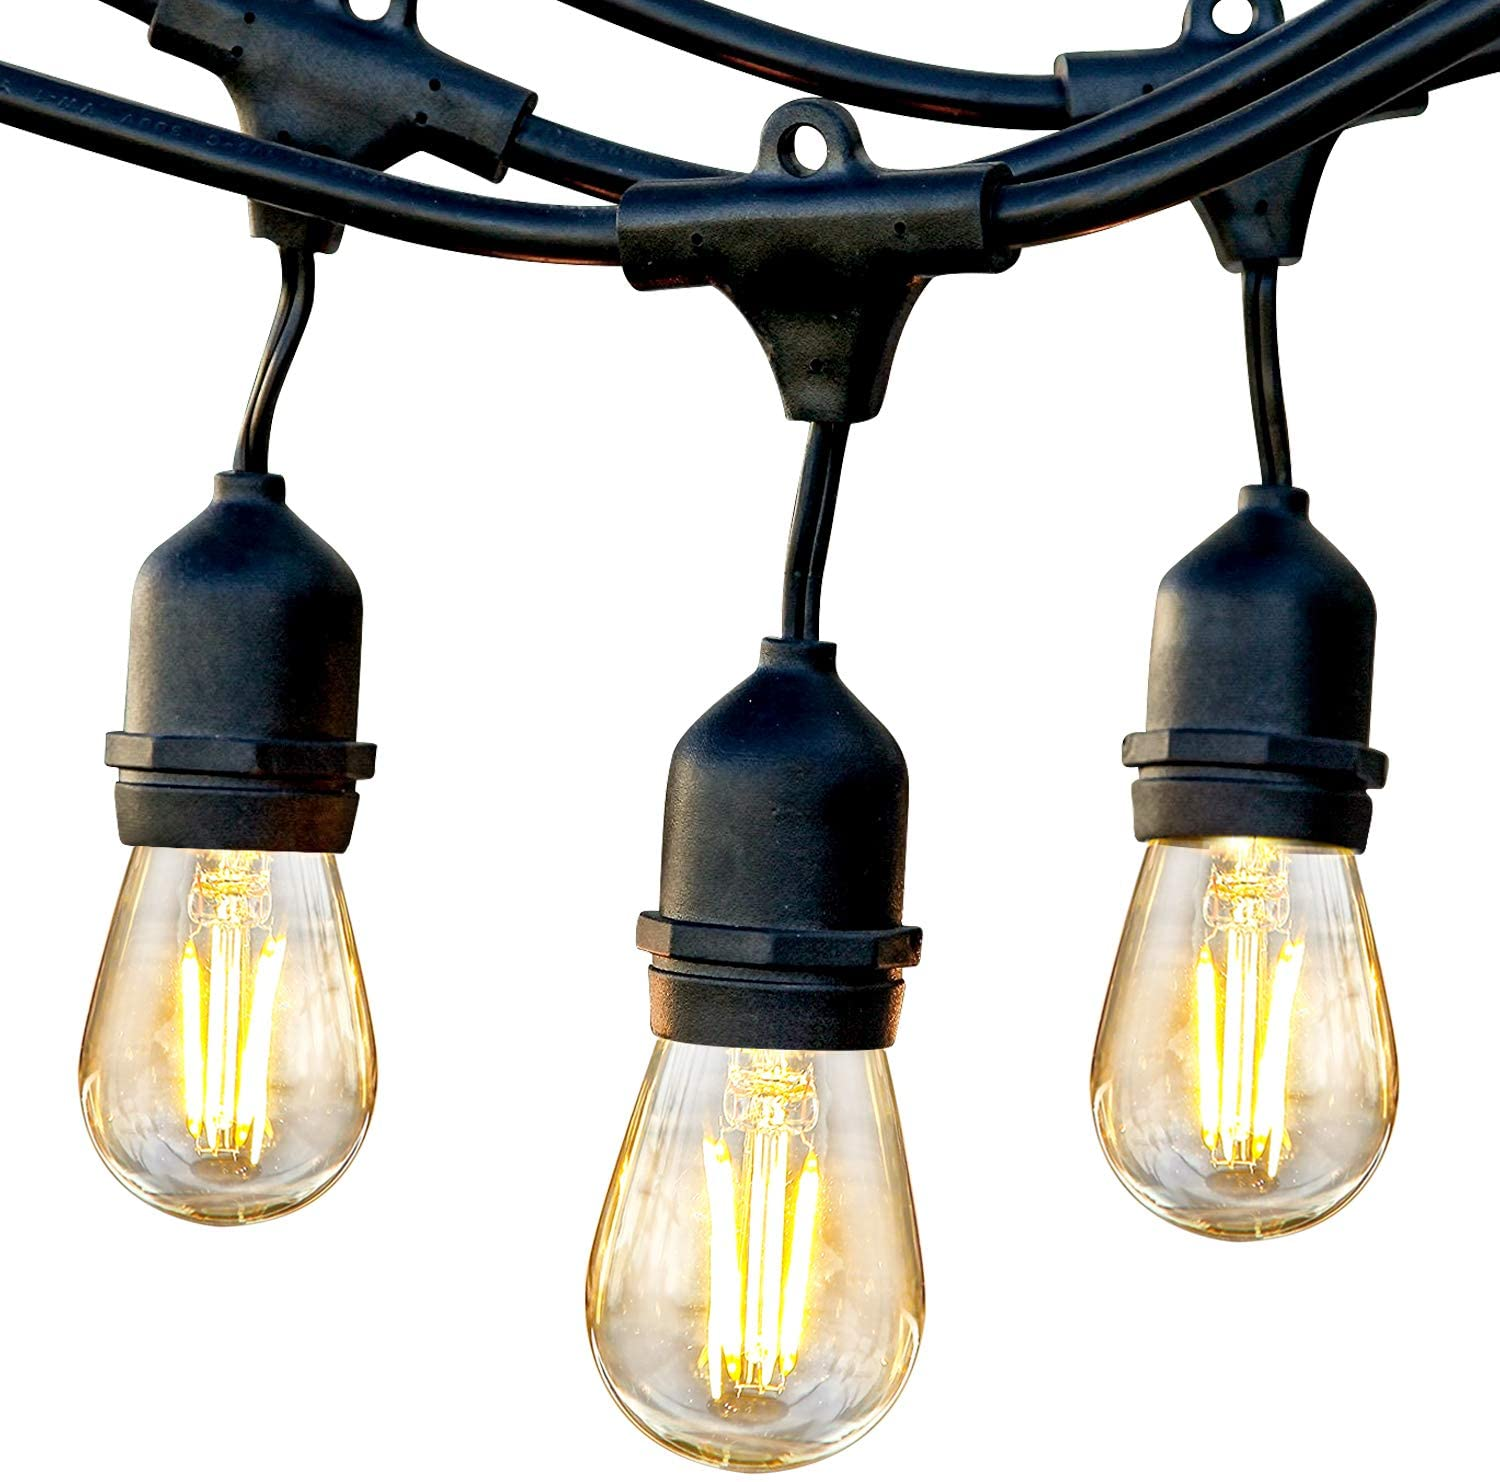 waterproof bistro lights for patio decor